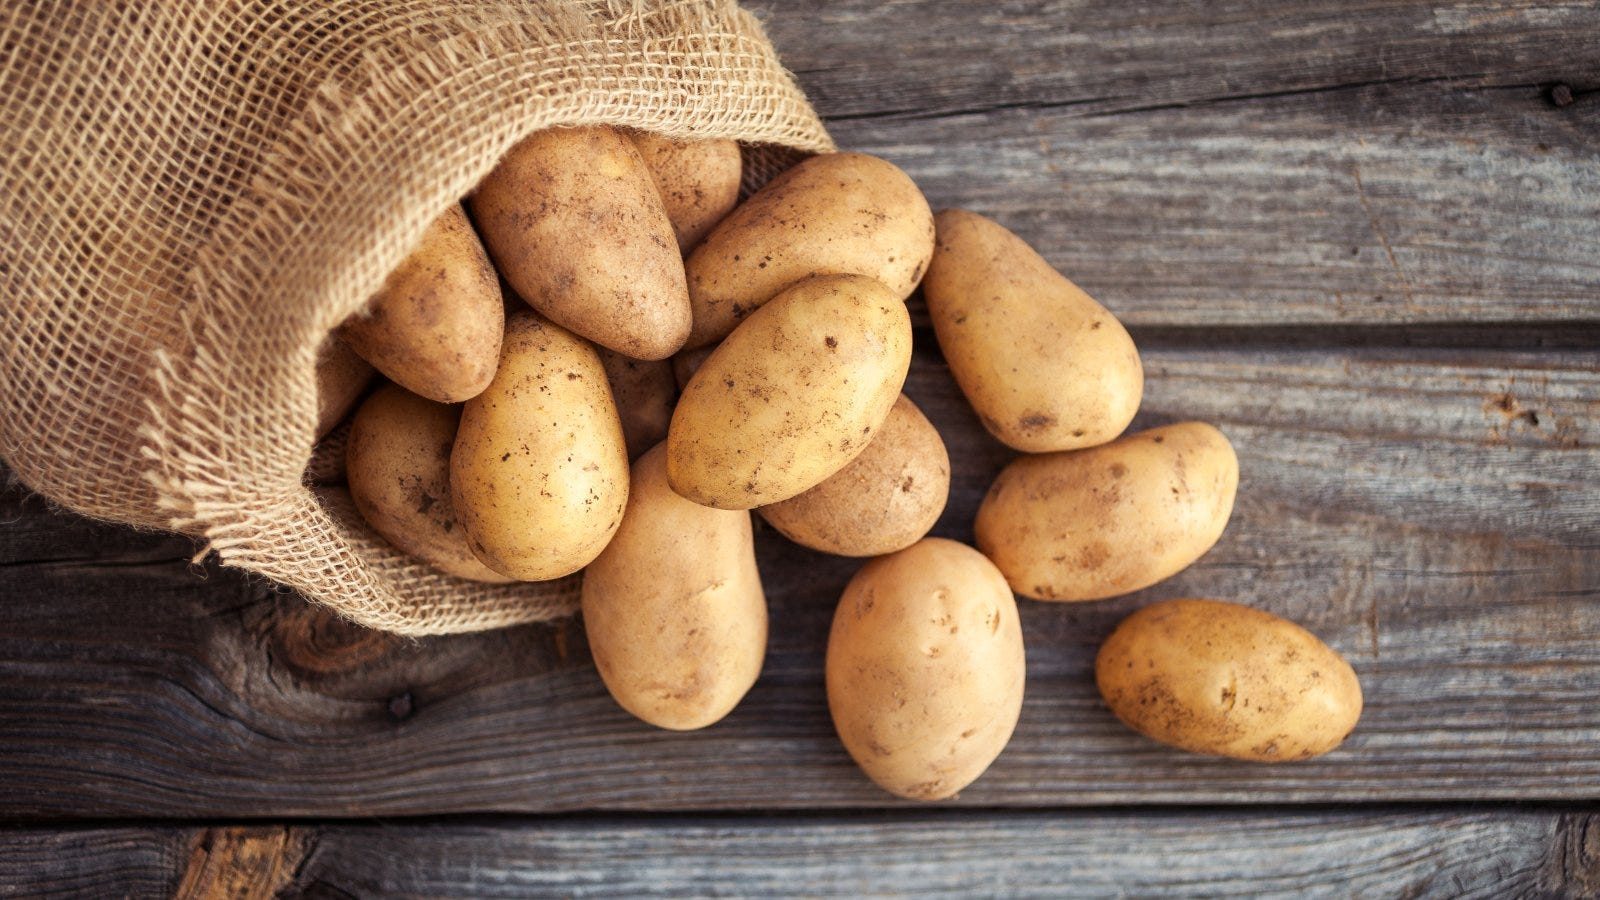 Fresh potatoes in an old sack on wooden background